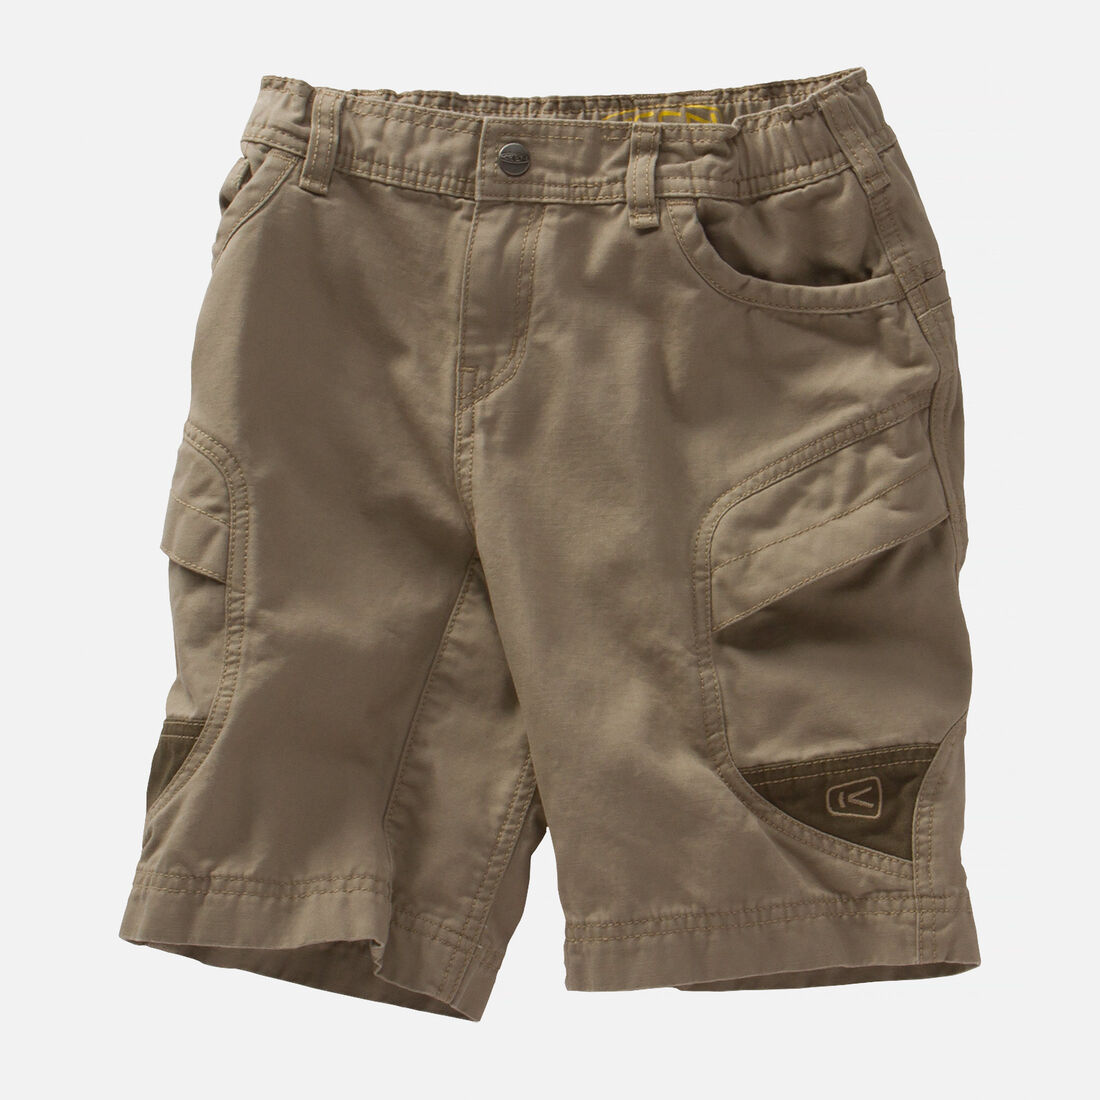 Kids' KEEN Newport Short in Khaki/Olive Green - large view.